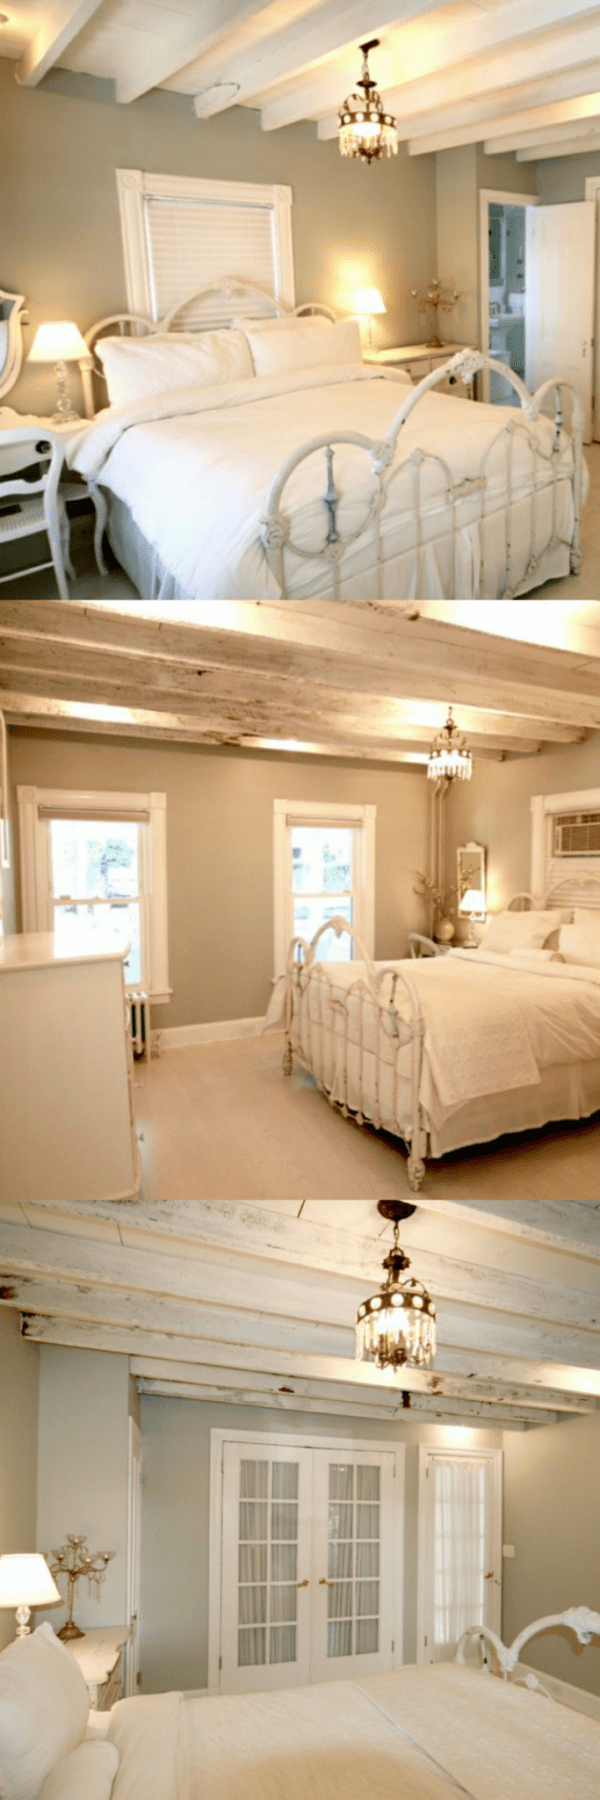 Basement Bedroom Ideas in Remodeling and Decorating 12